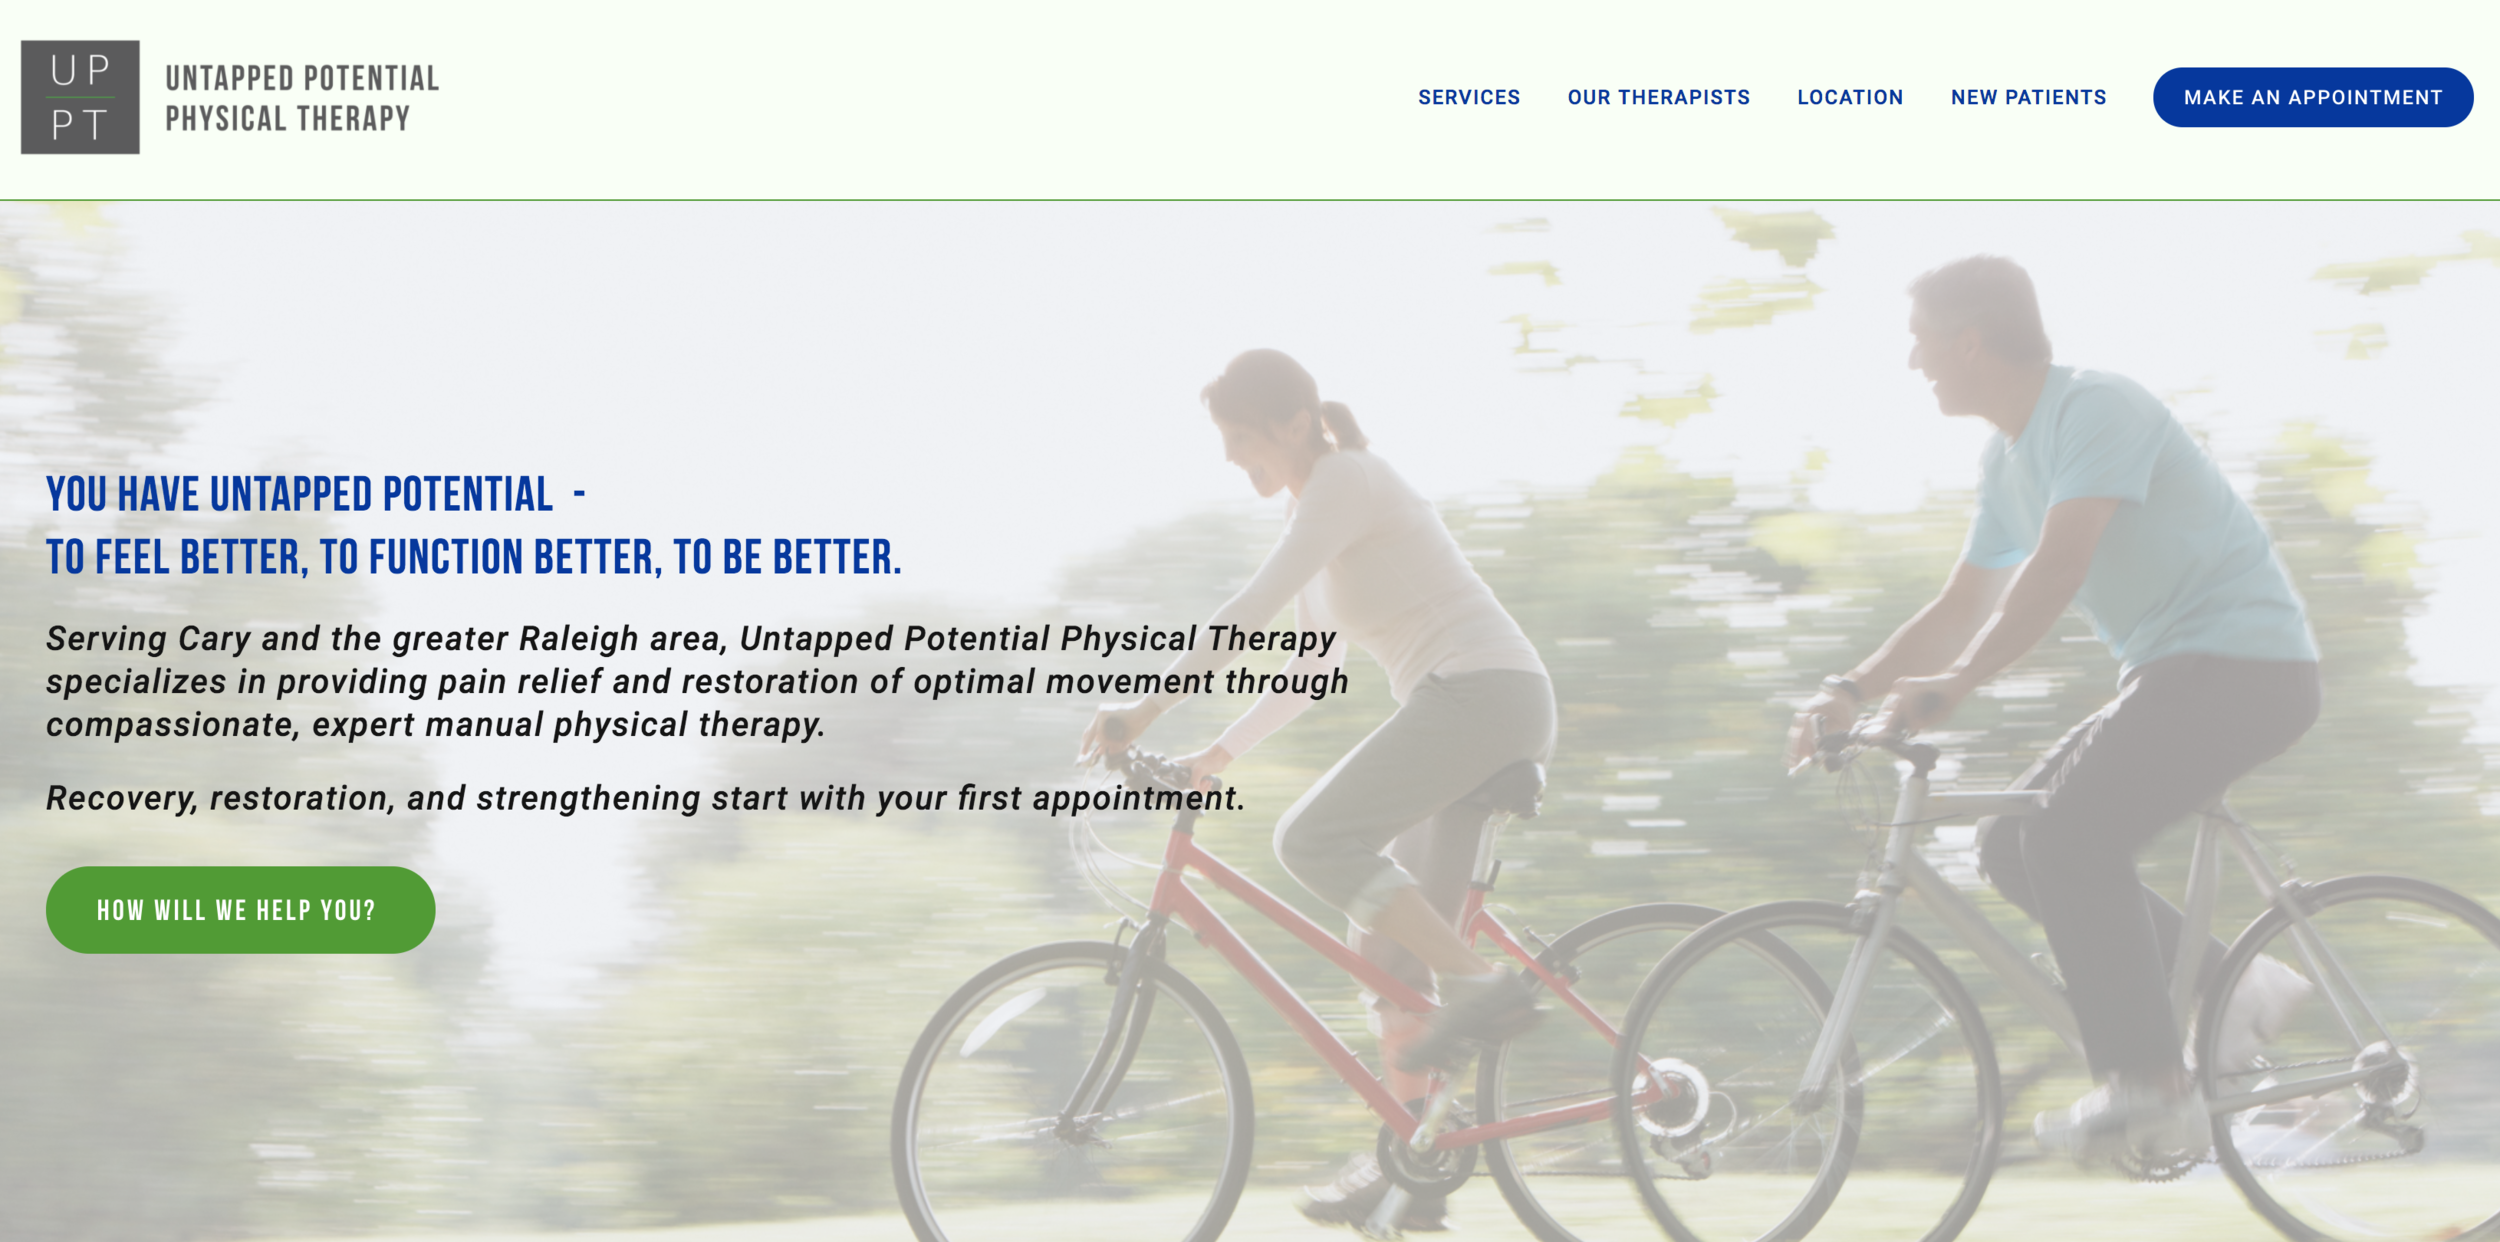 Untapped Potential Physical Therapy